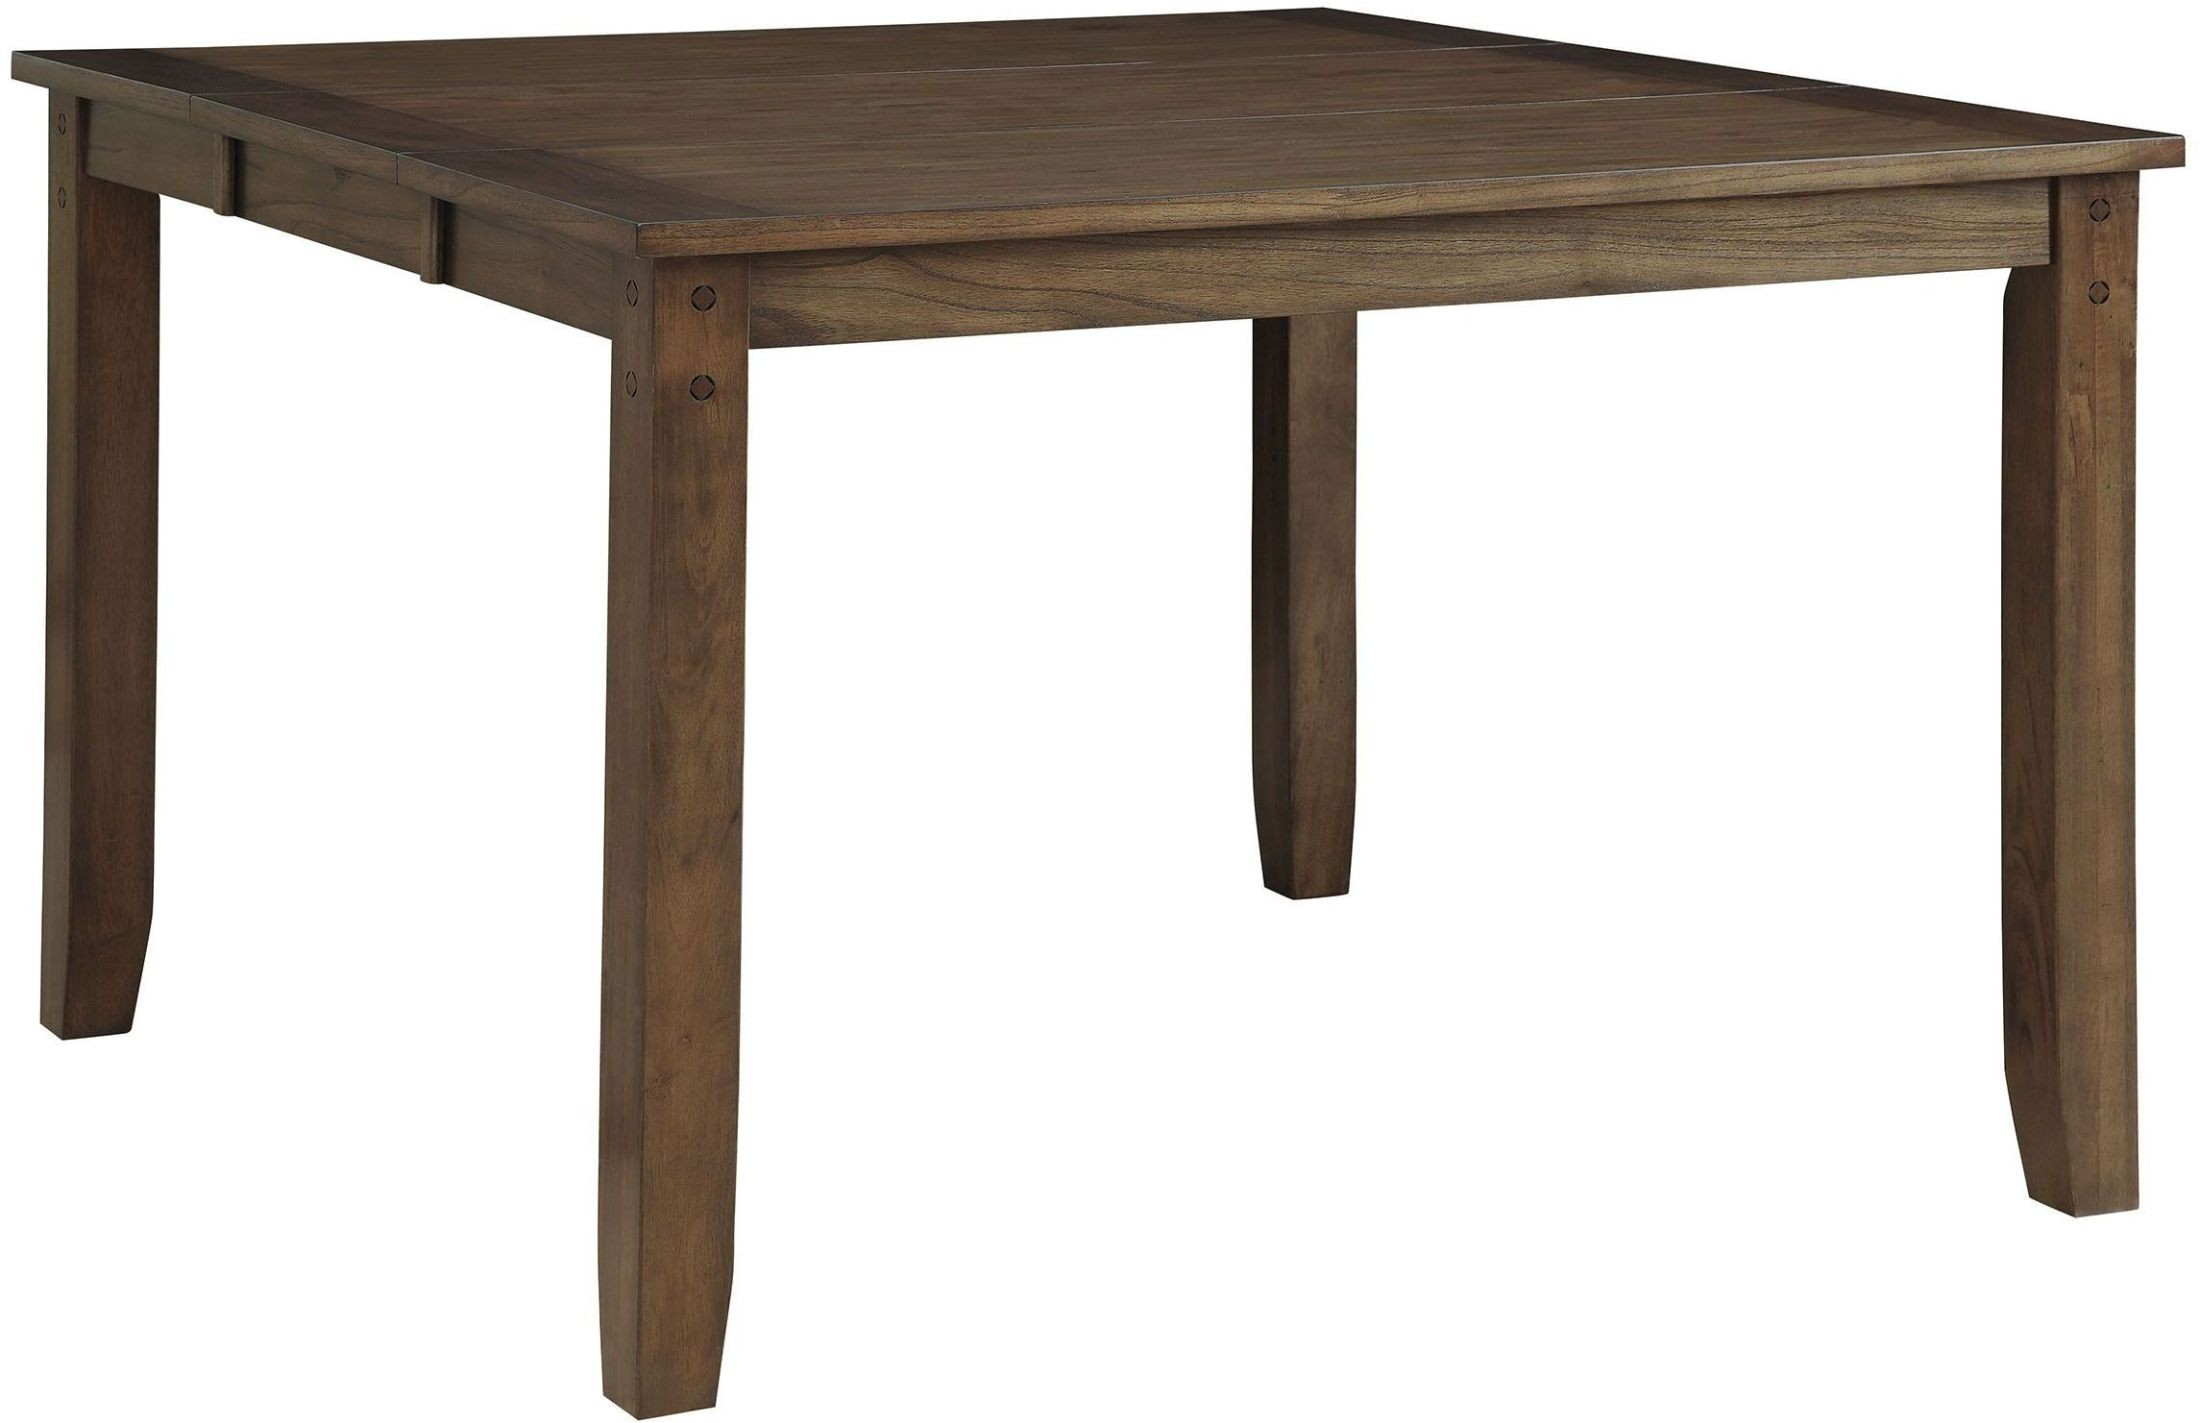 Brockton Ii Rustic Oak Extendable Counter Height Dining  : cm3355pt wb from colemanfurniture.com size 2200 x 1423 jpeg 219kB